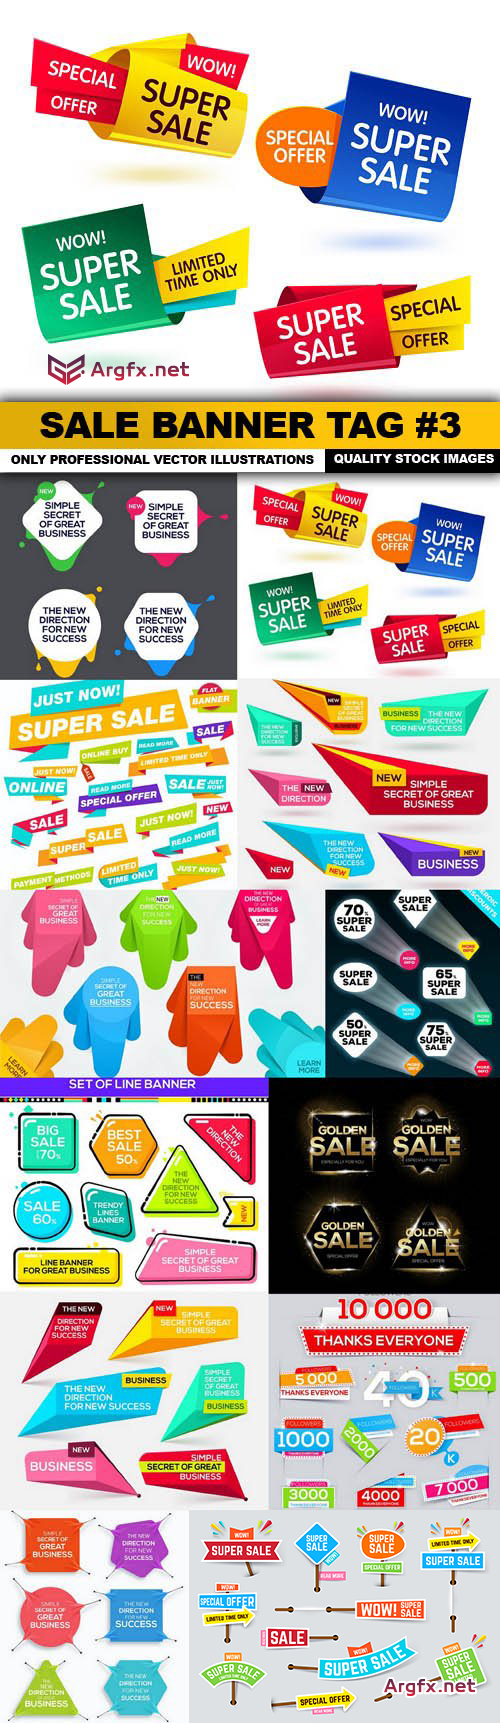 Sale Banner Tag #3 - 12 Vector